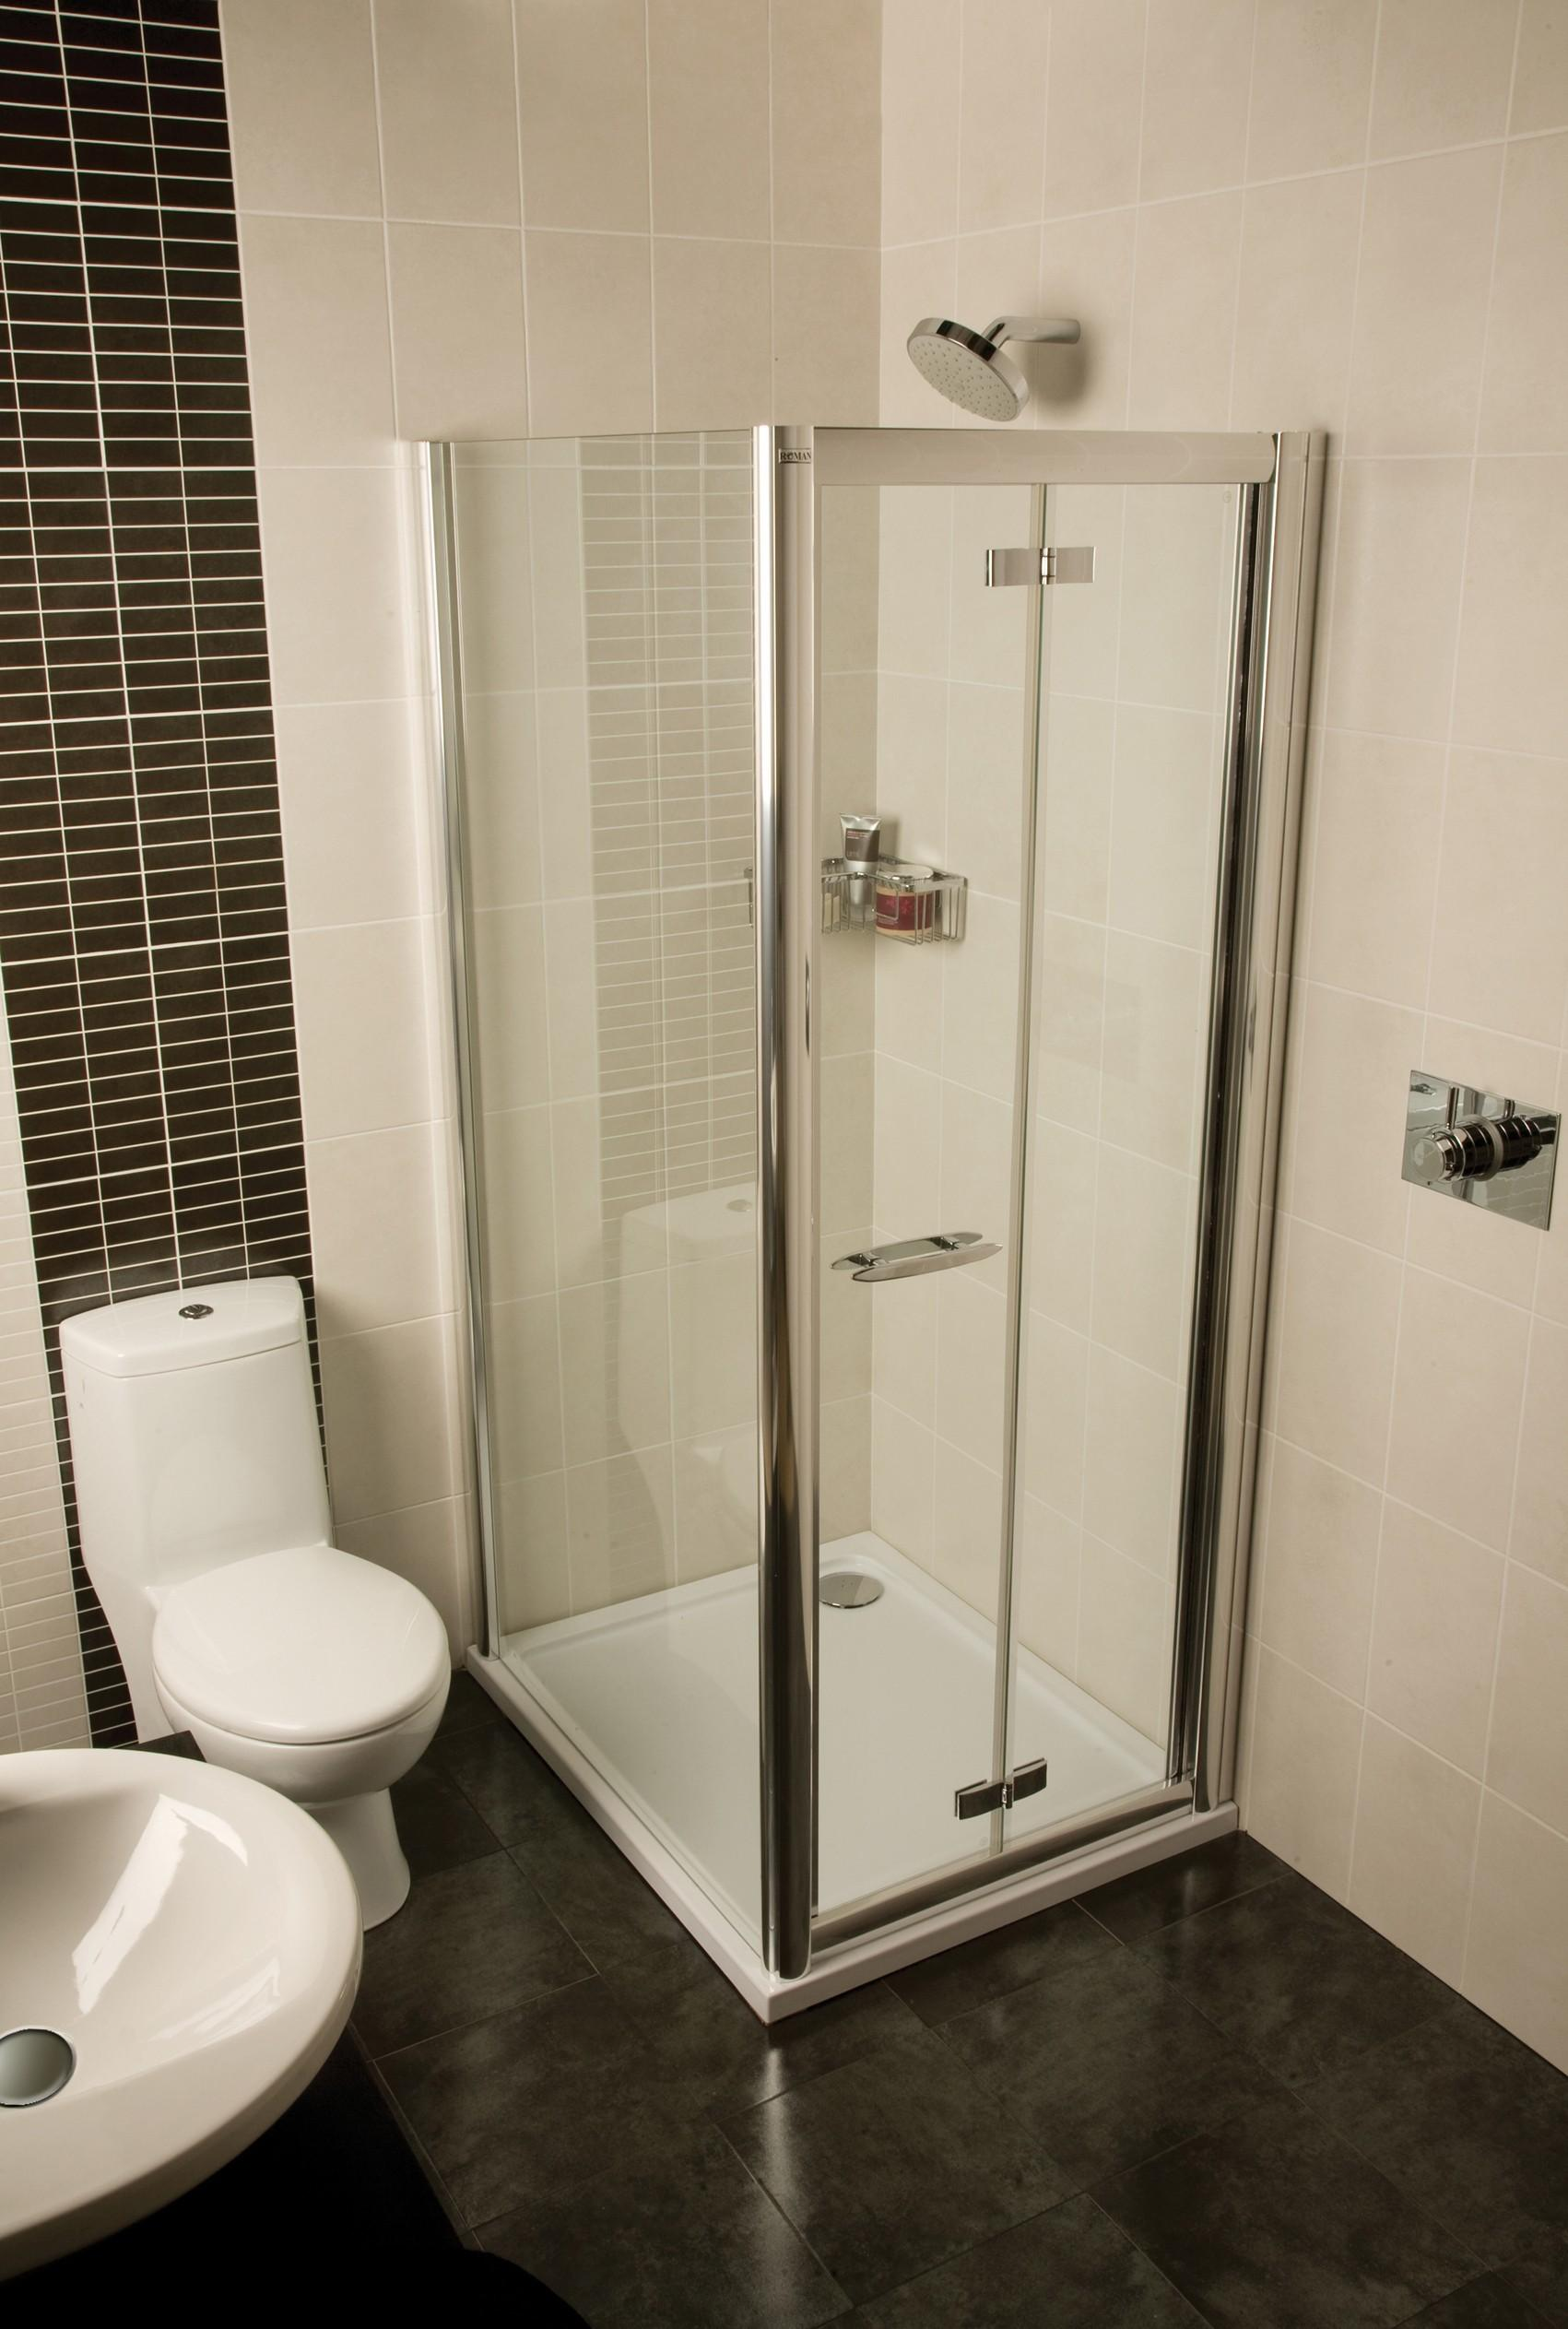 Space Saving Shower Solution Small Bathroom Roman Showers